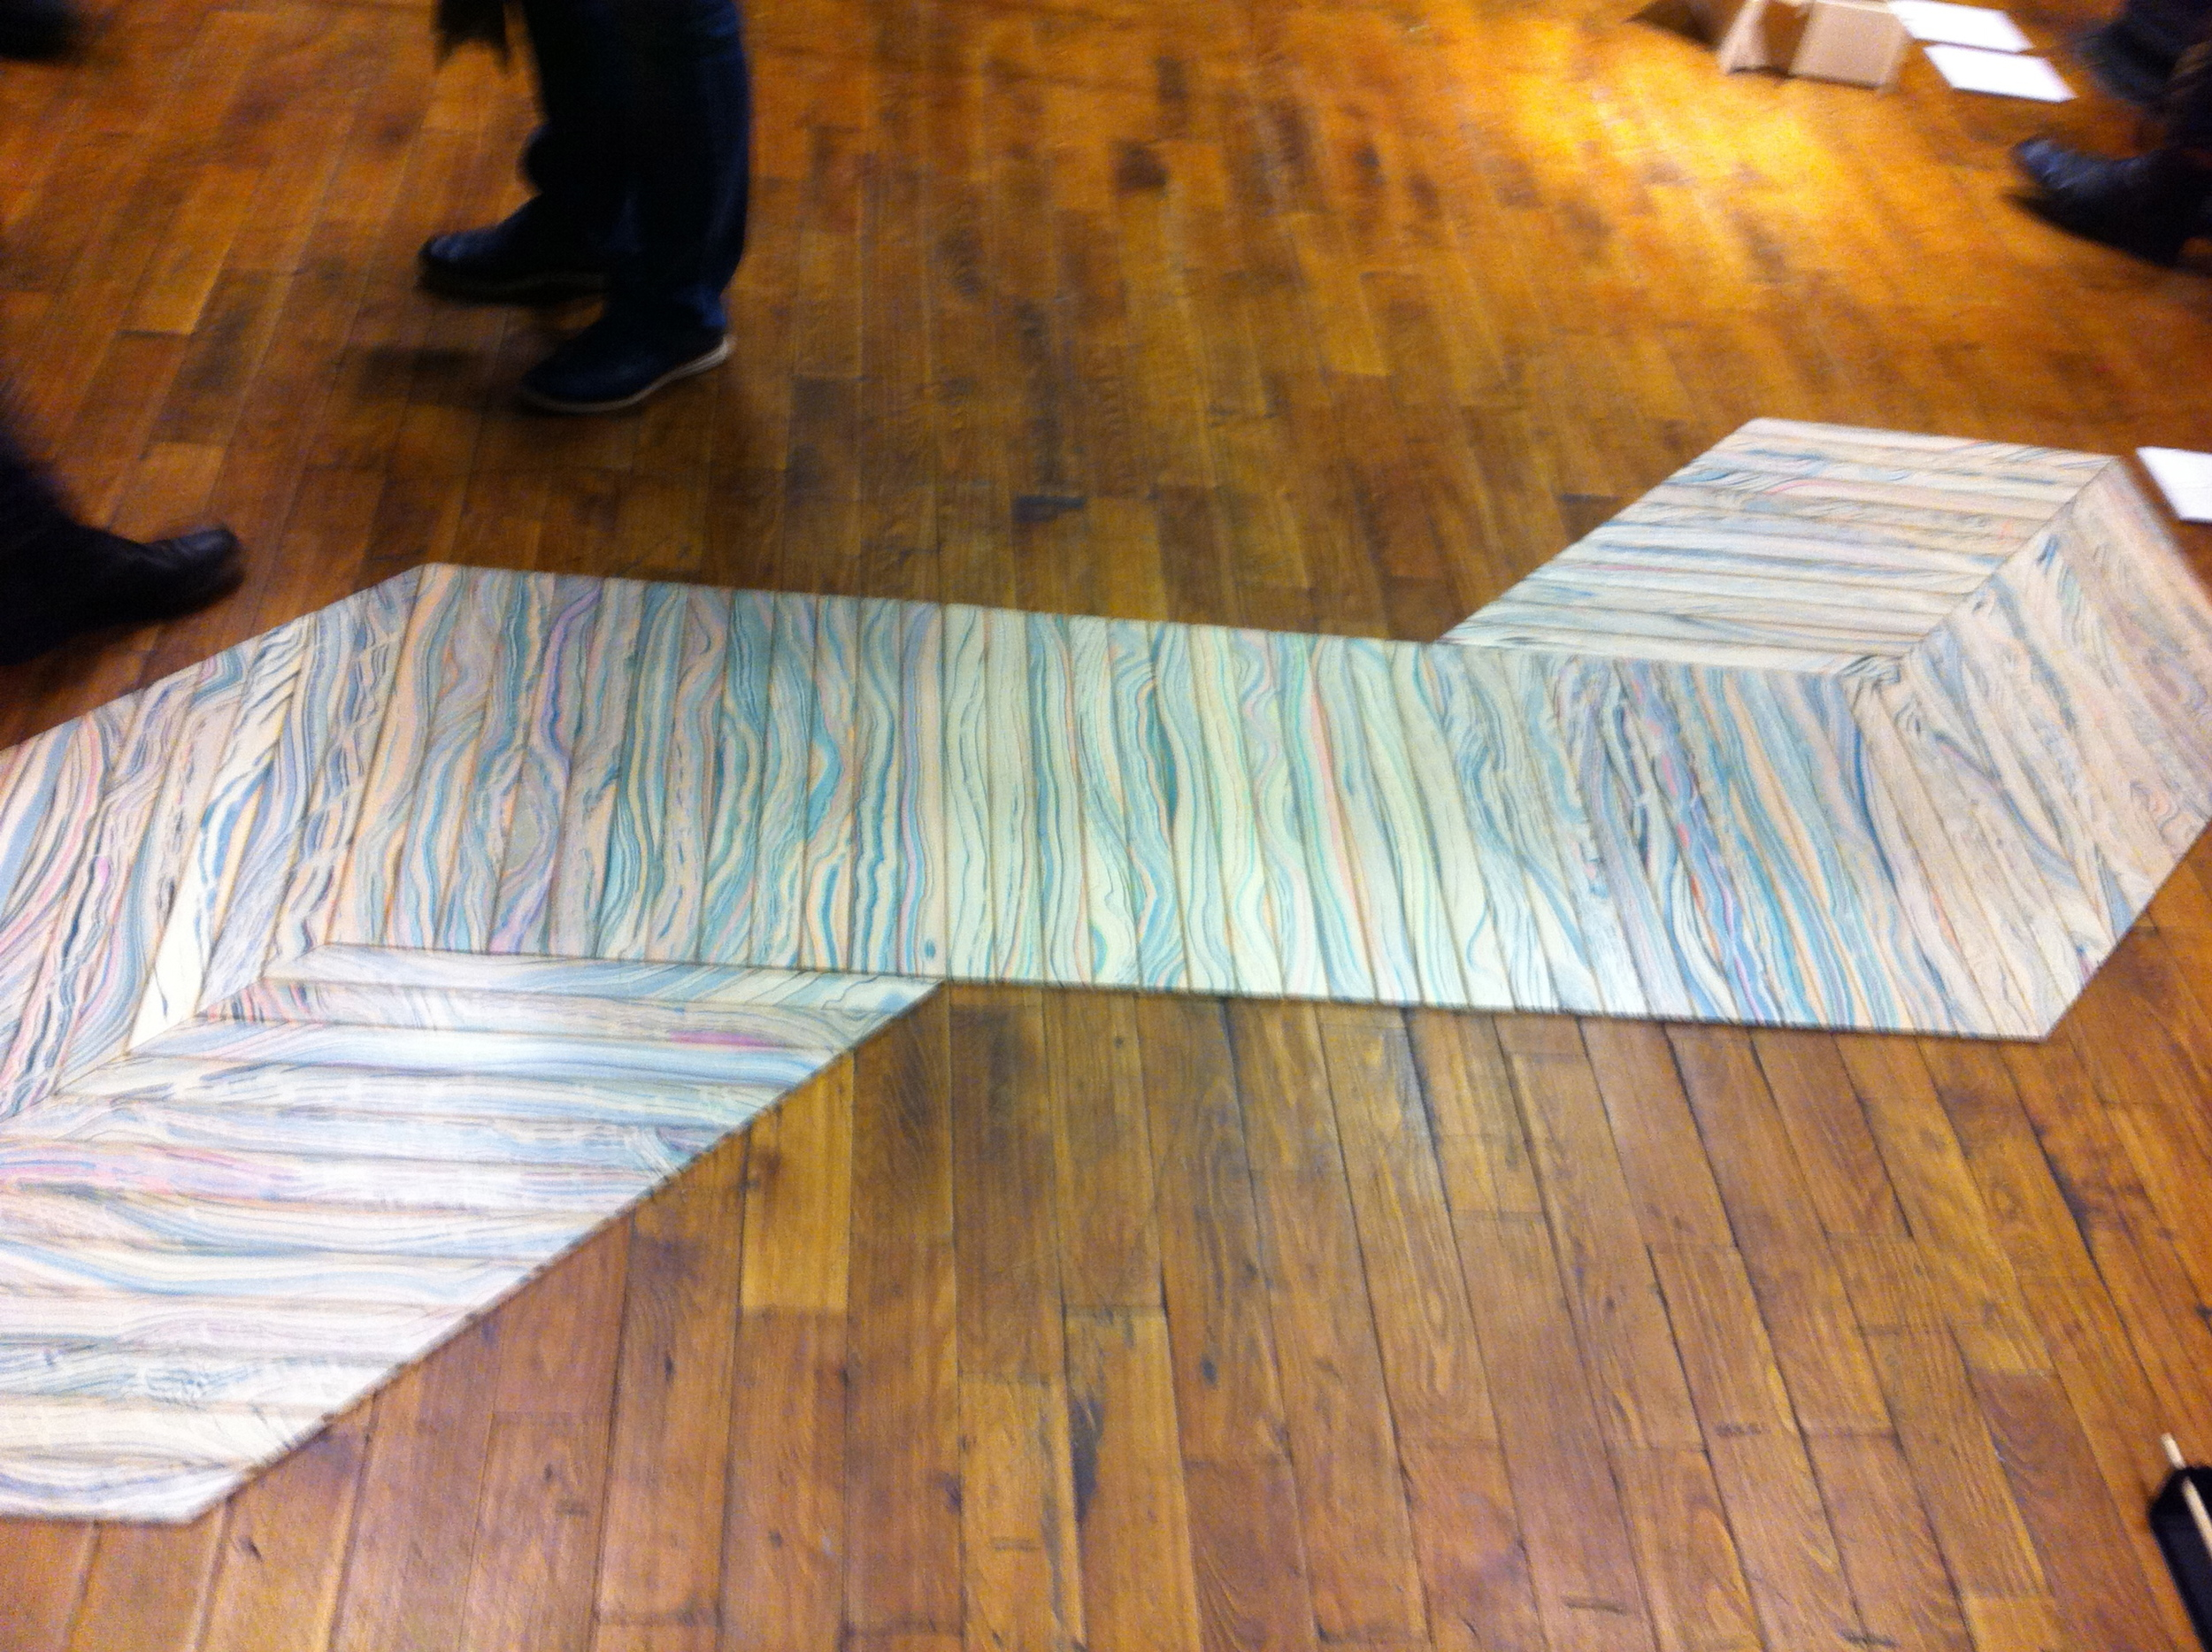 and some wooden modular carpet from  Pernille Snedker Hansen . Additionally, check out the talented  Line Depping  and  Jakob Jorgensen , who sell their designs in Japan.